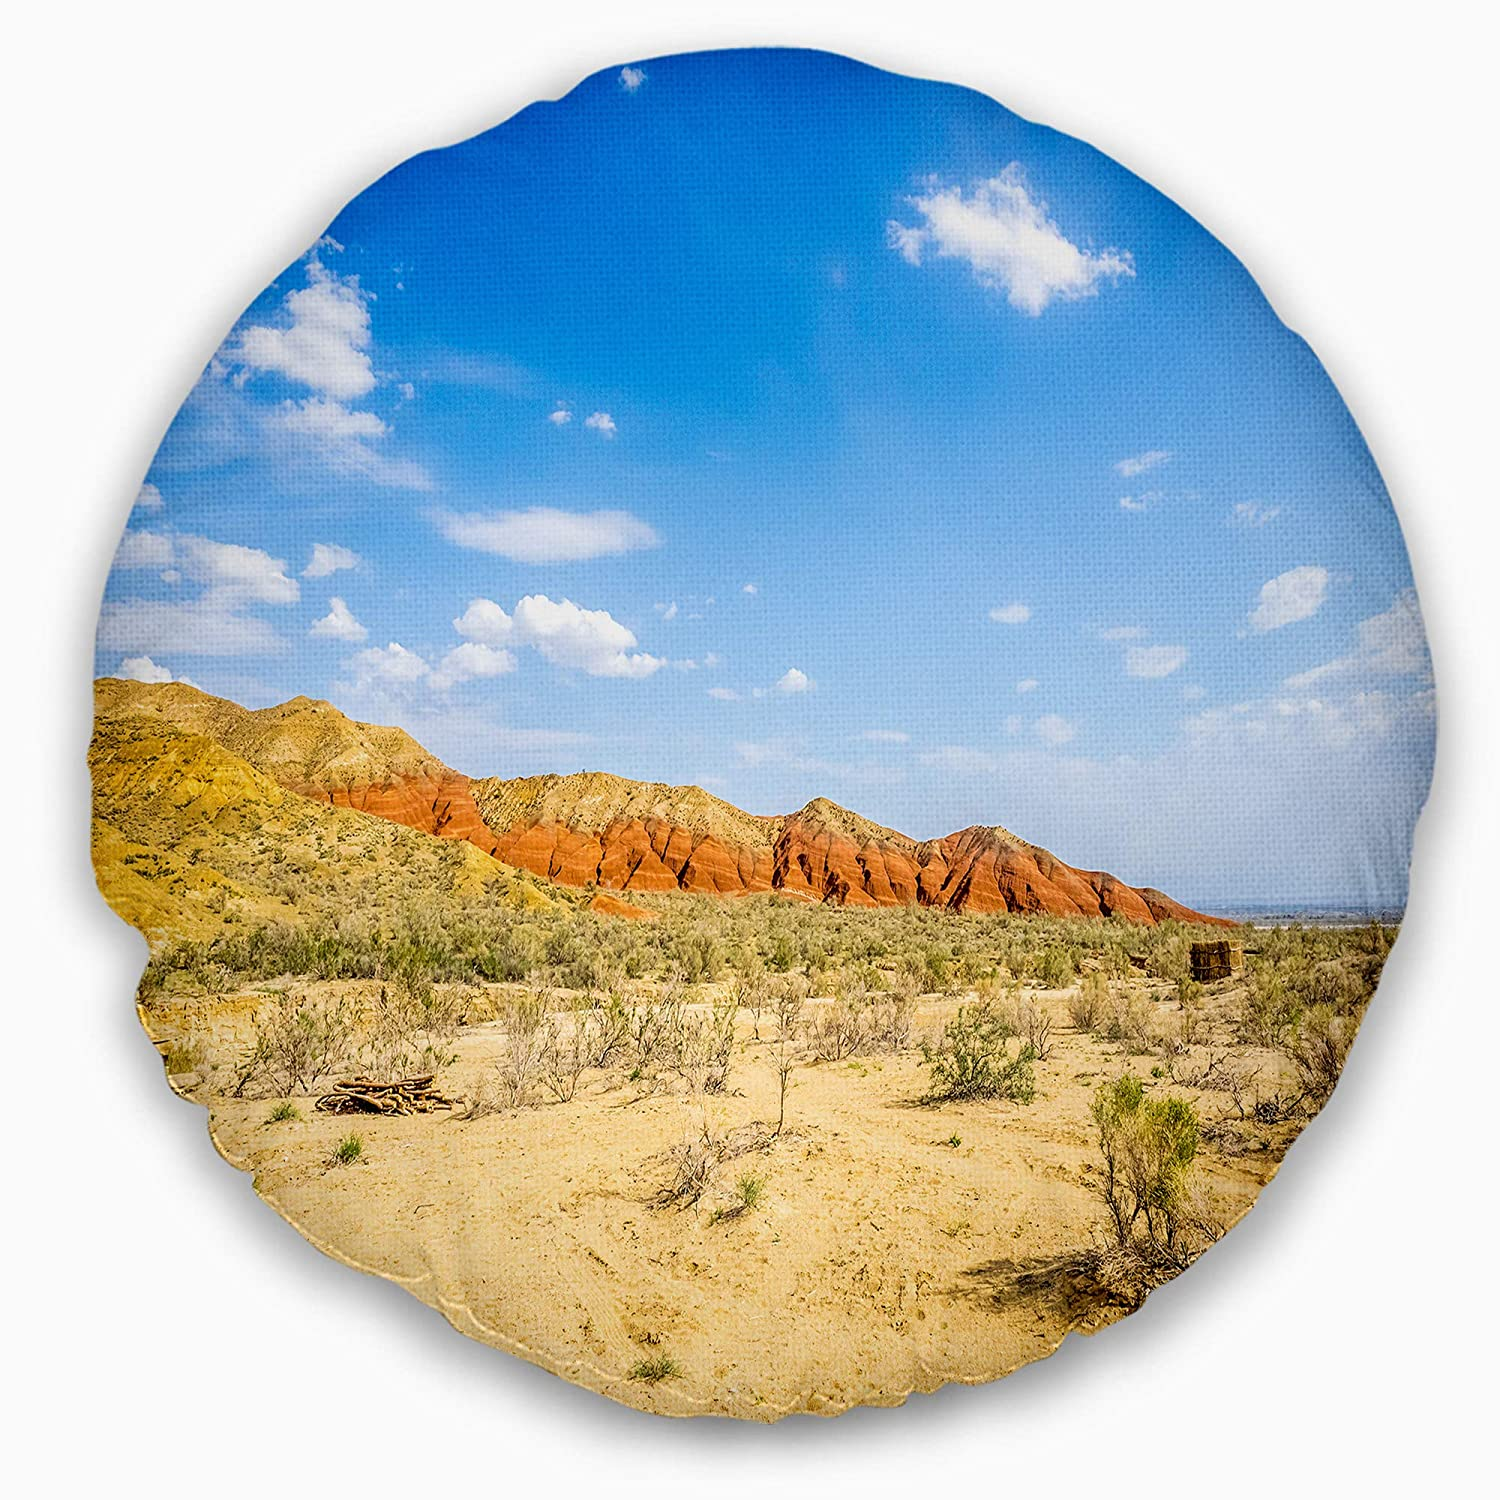 Sofa Throw Pillow 20 Insert Printed On Both Side Designart CU8767-20-20-C Rocky Mountain in Desert Landscape Photo Round Cushion Cover for Living Room